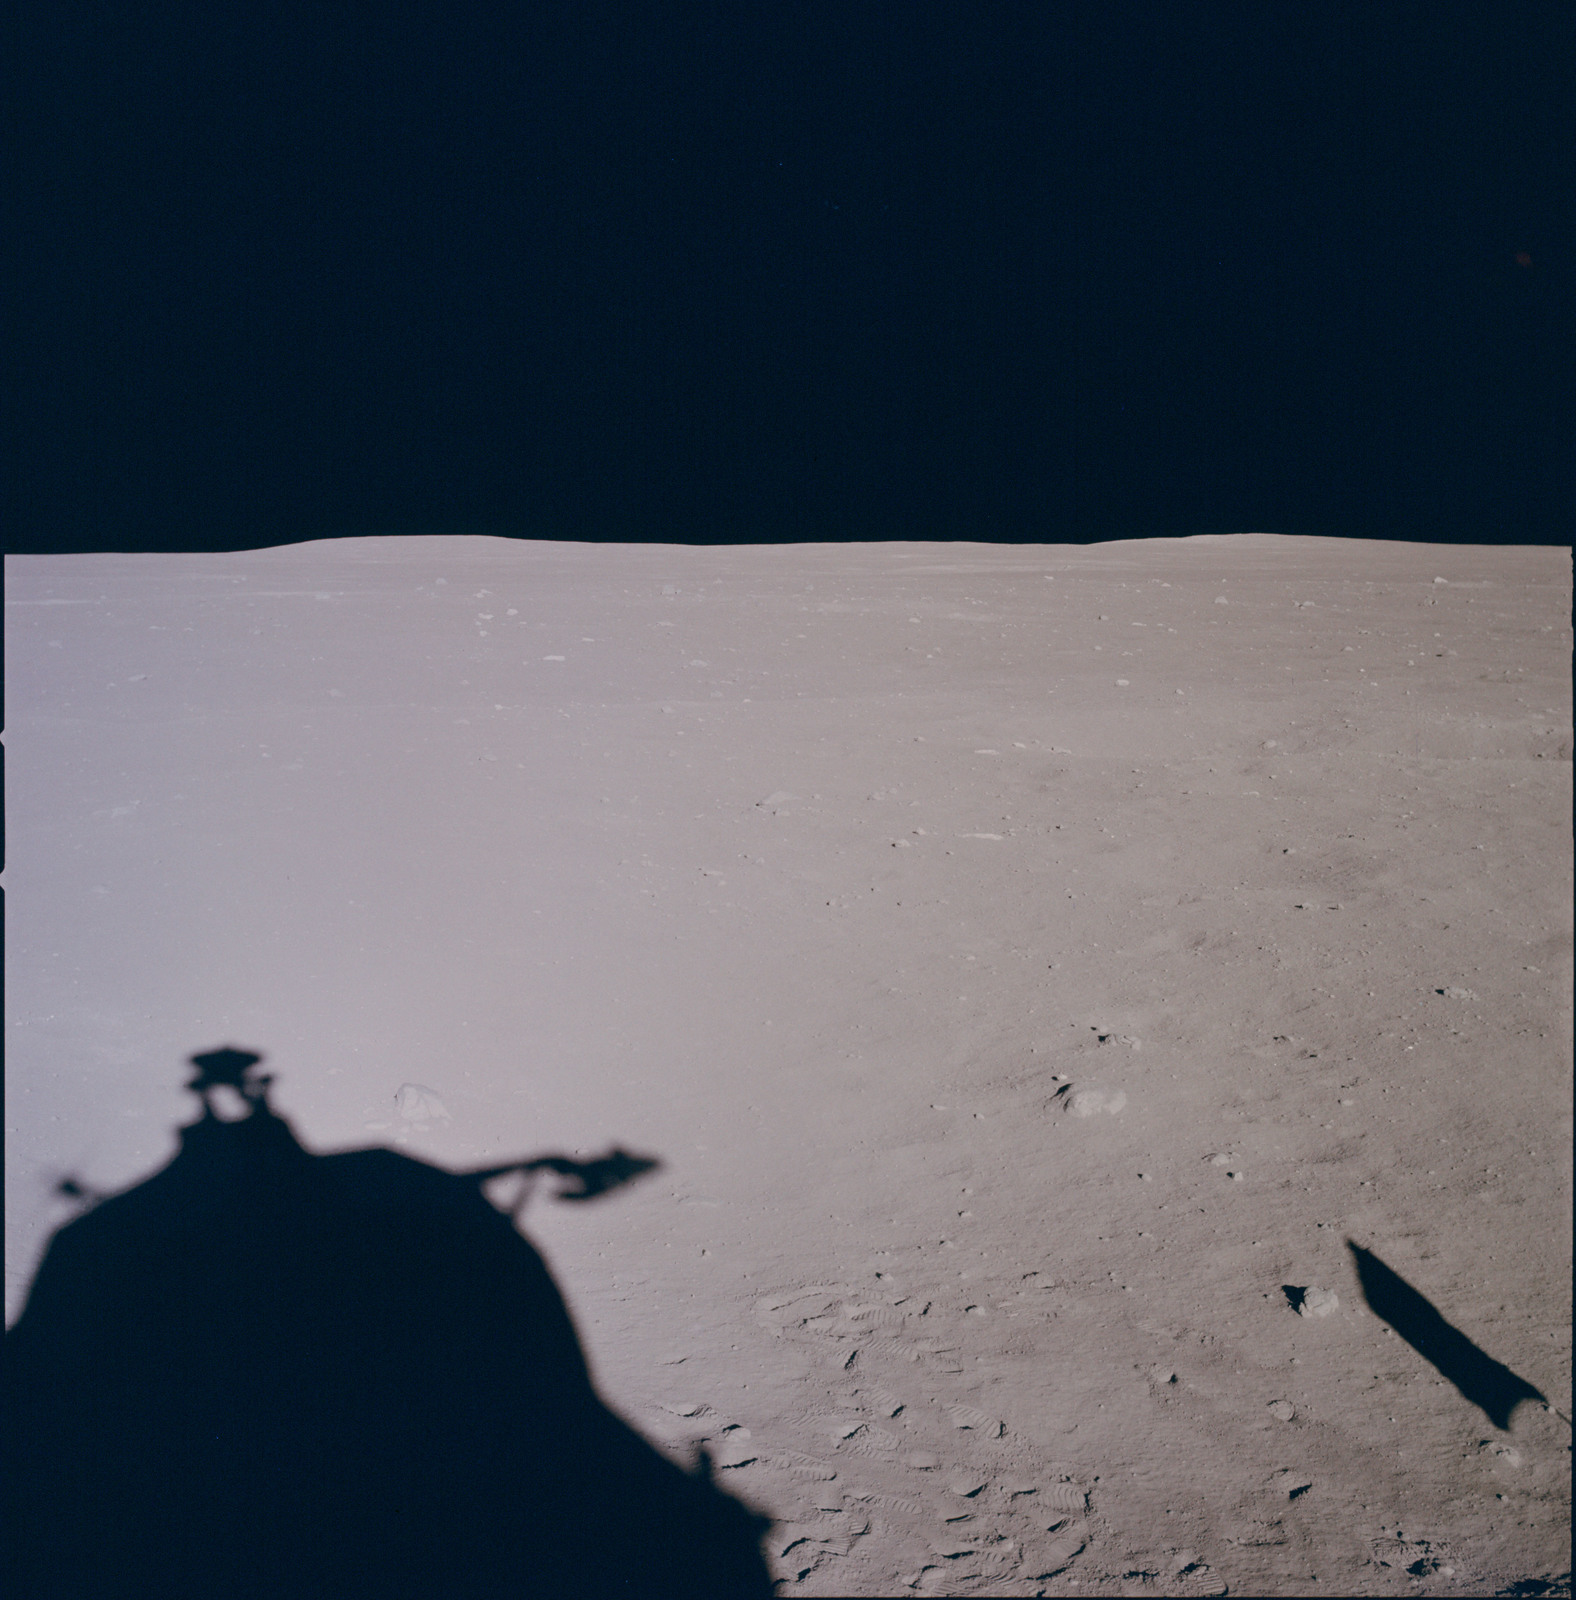 AS11-37-5490 - Apollo 11 - Apollo 11 Mission image - Lunar horizon from Tranquility Base